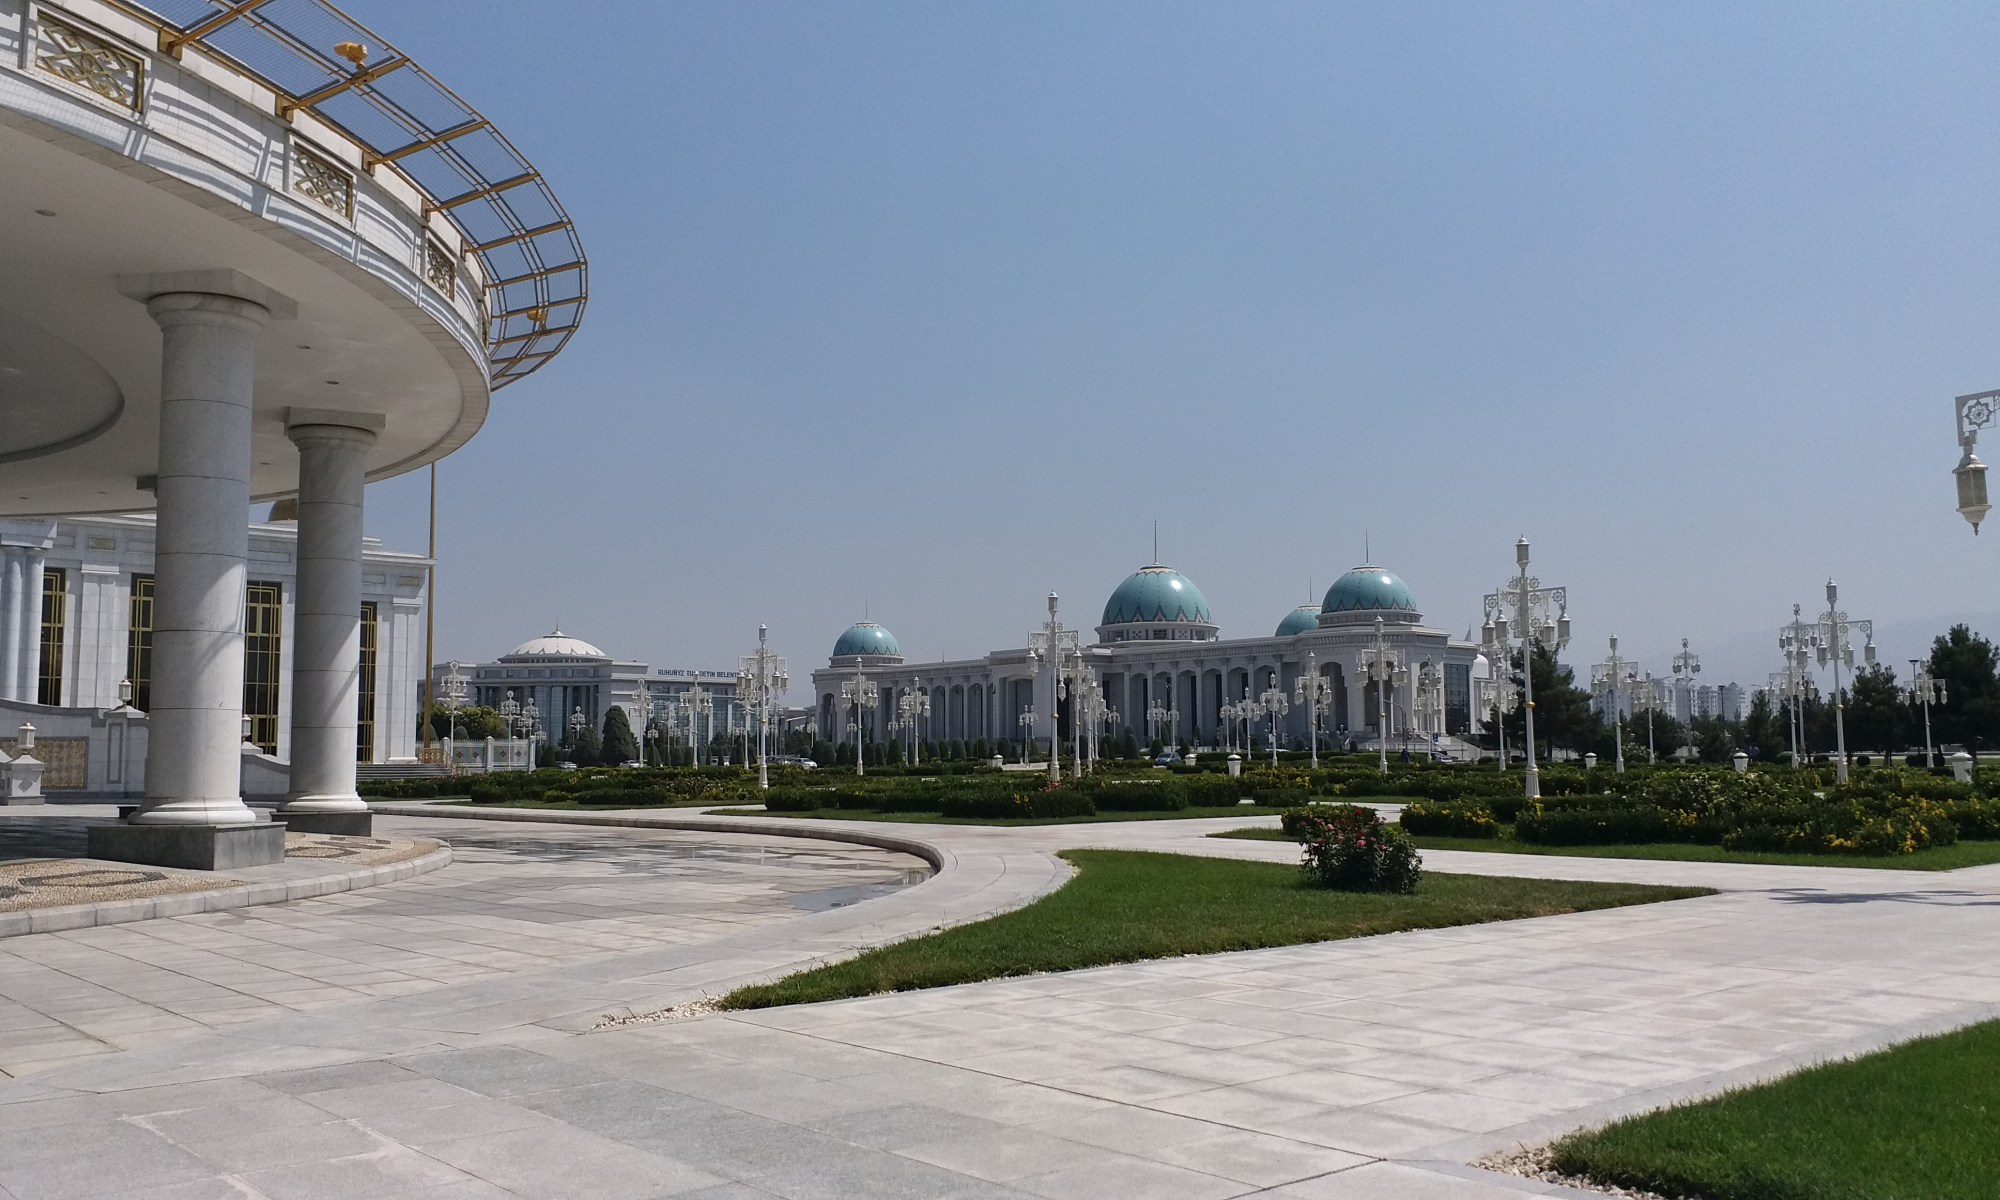 K in Motion Travel Blog. Travel to Turkmenistan - Overly Impressive Capital to Caspian Sea Port. Ashgabat White Domed Buildings